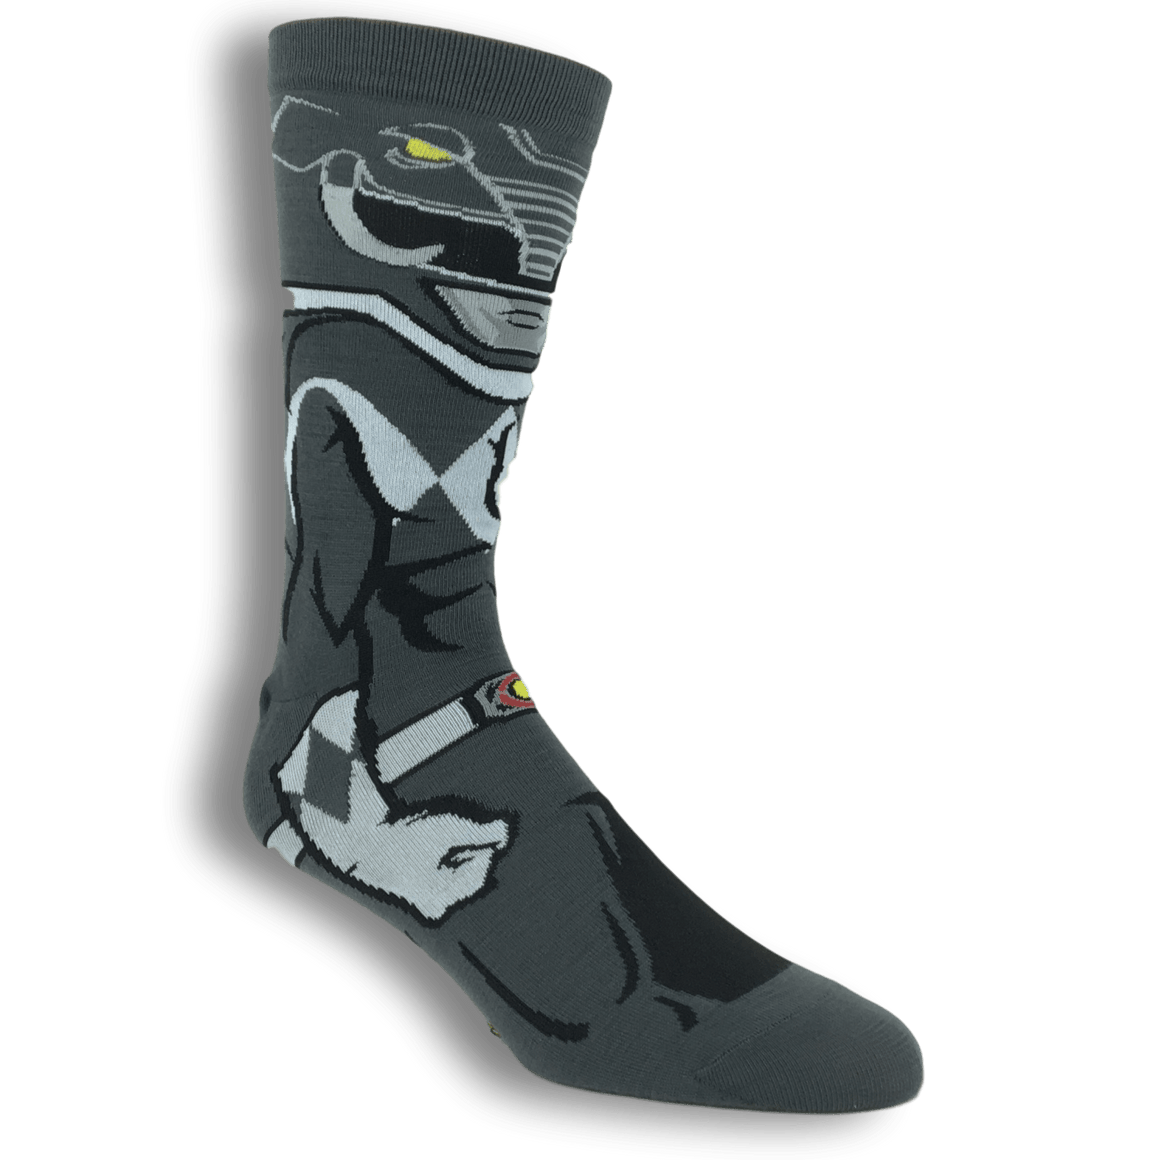 Socks - Power Rangers Black Ranger 360 Socks